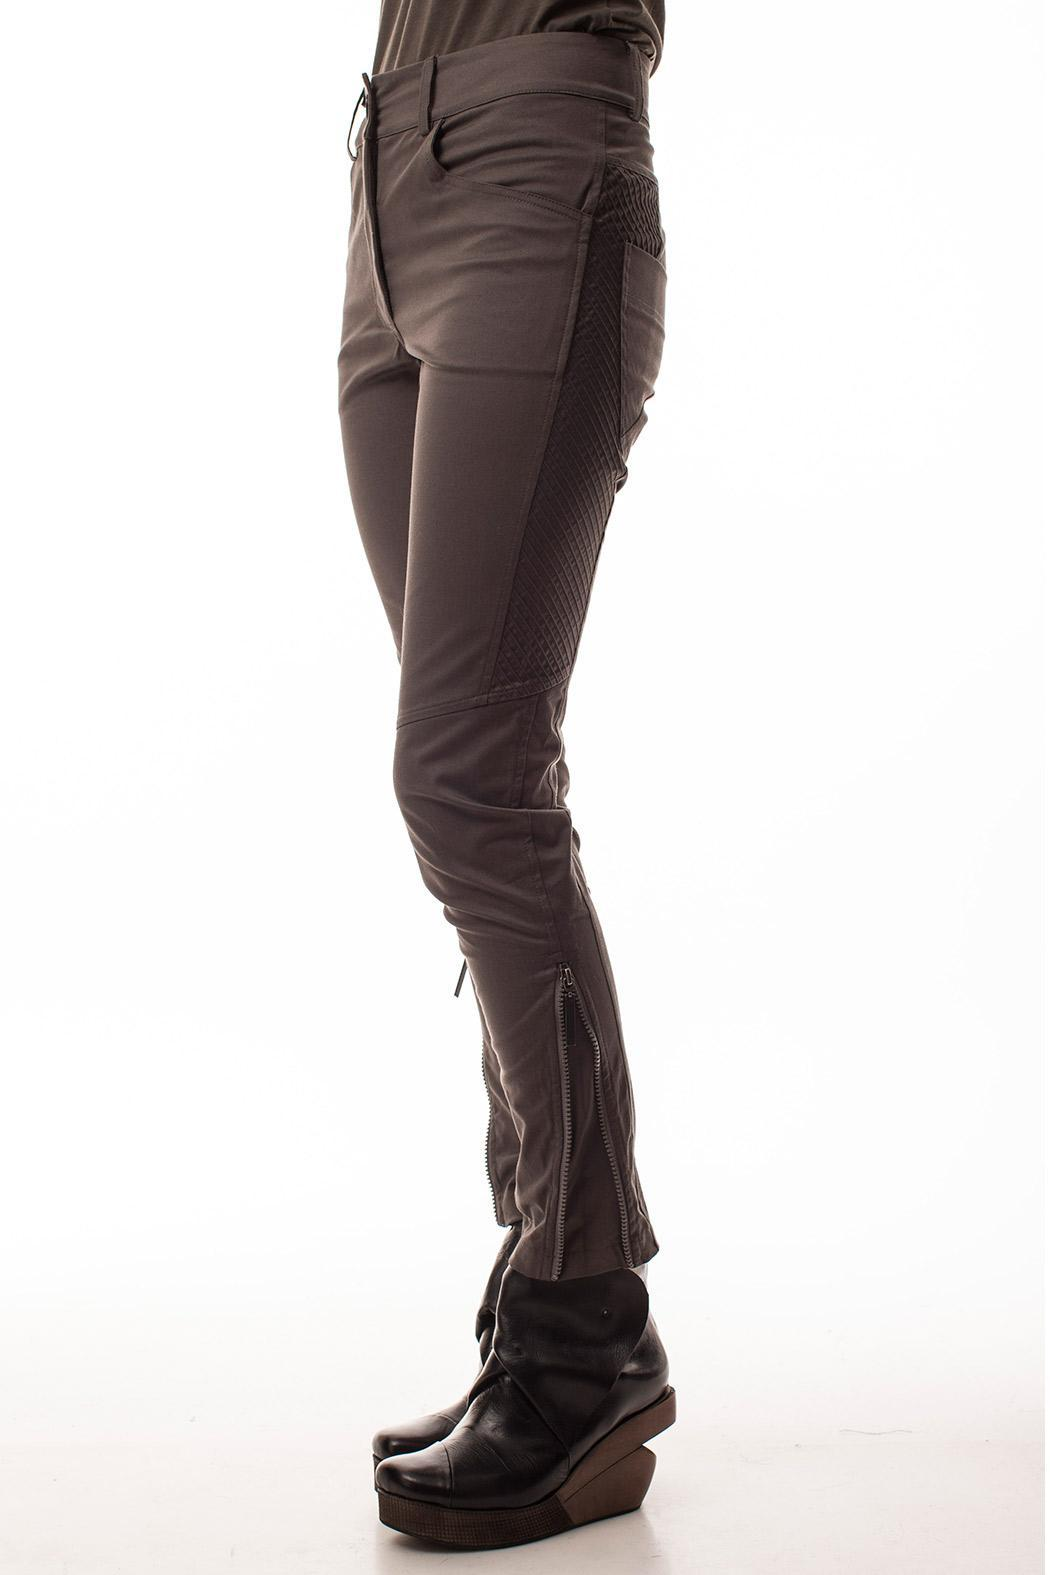 coragroppo Capri Brown Pants - Front Full Image